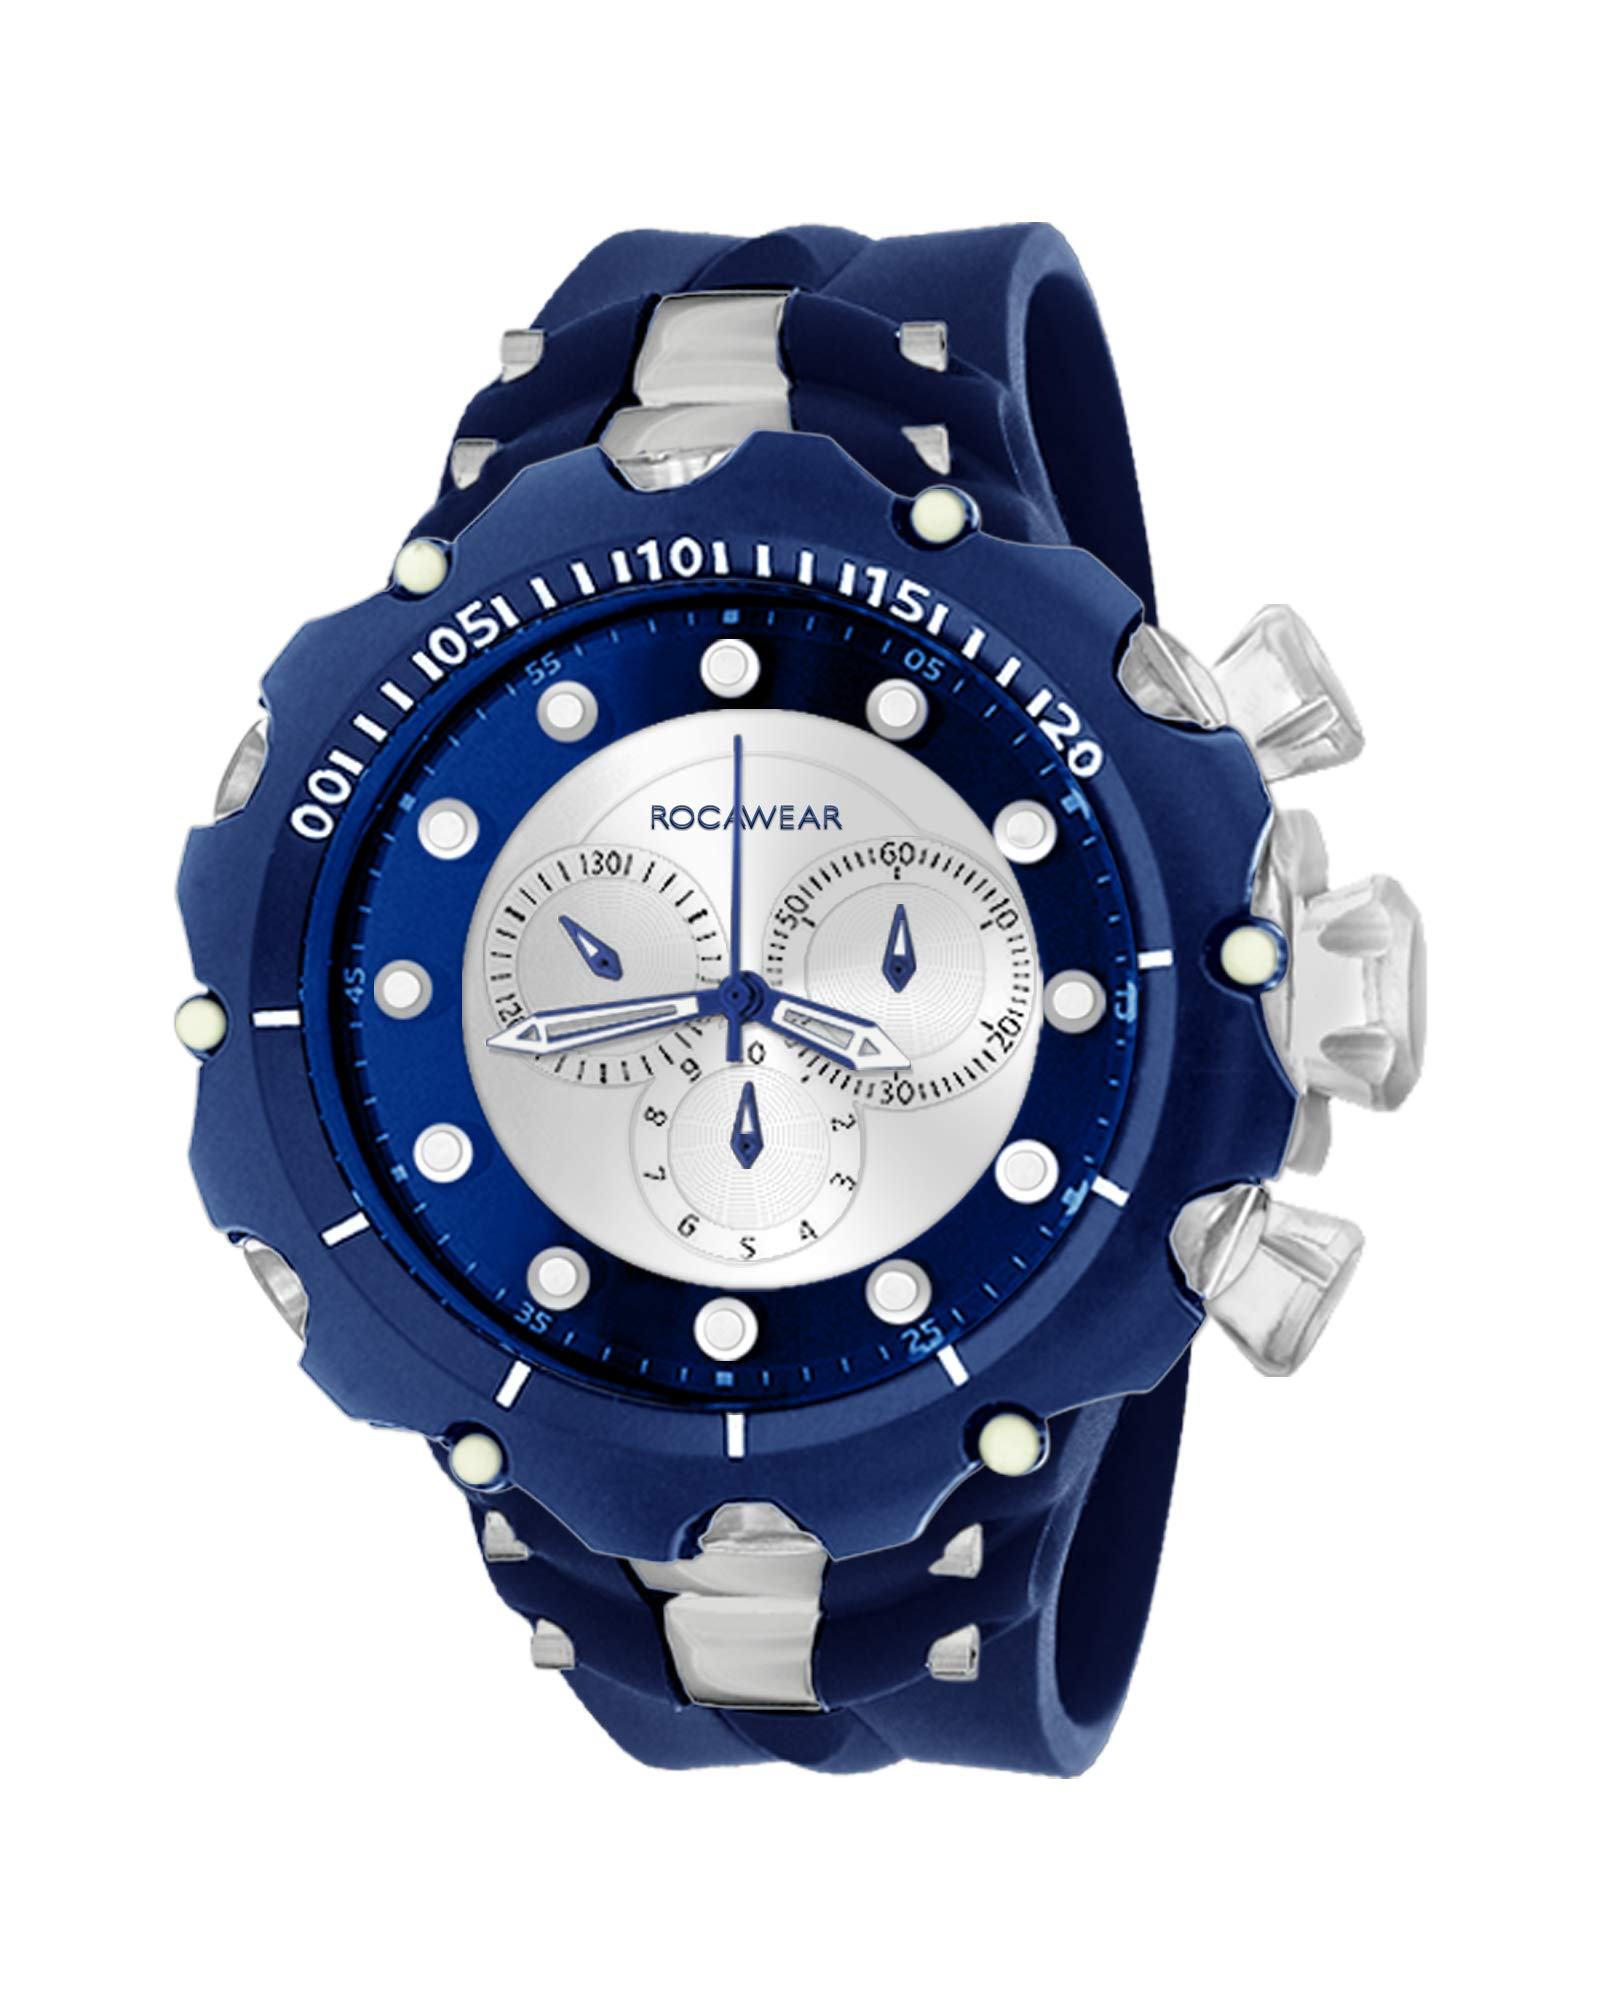 Rocawear Mens Quartz Two-Tone Analog Watch with Oversized Dial (Navy) by Rocawear